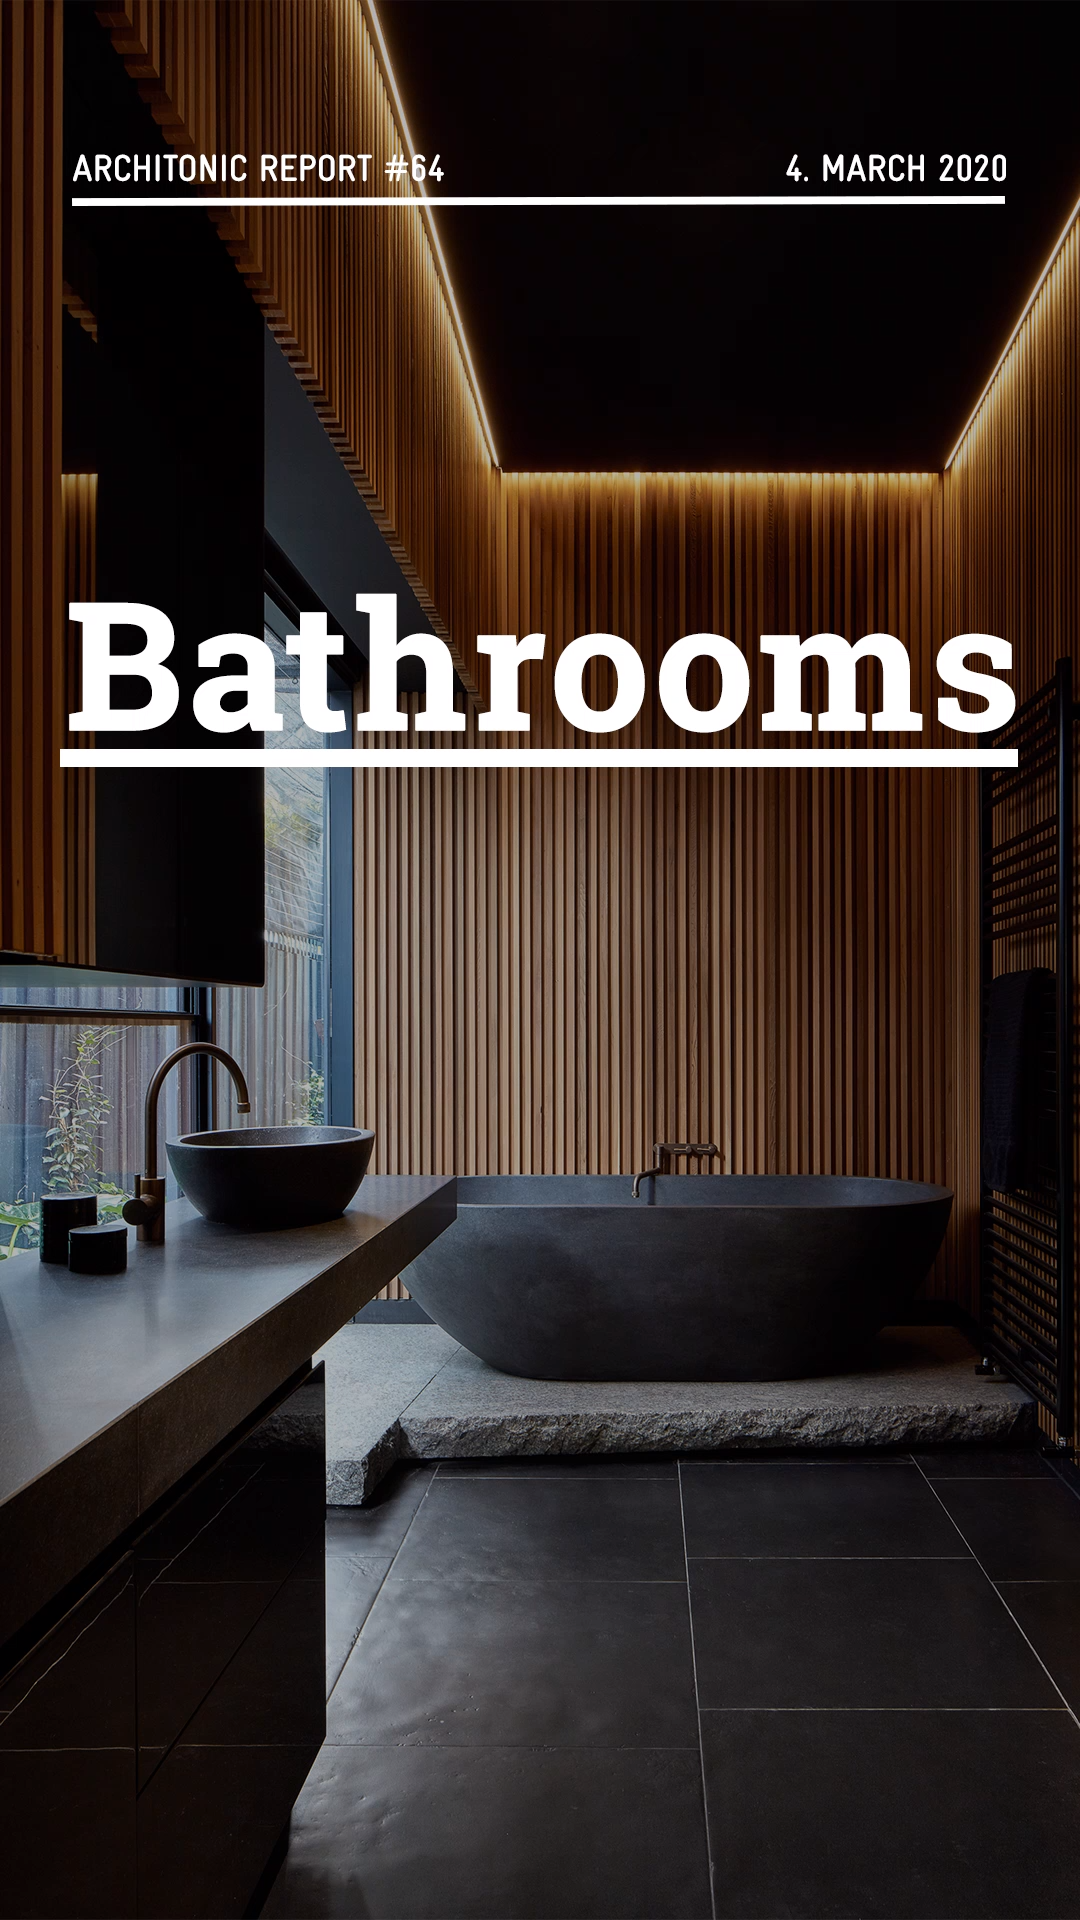 No. 64 | Bathrooms